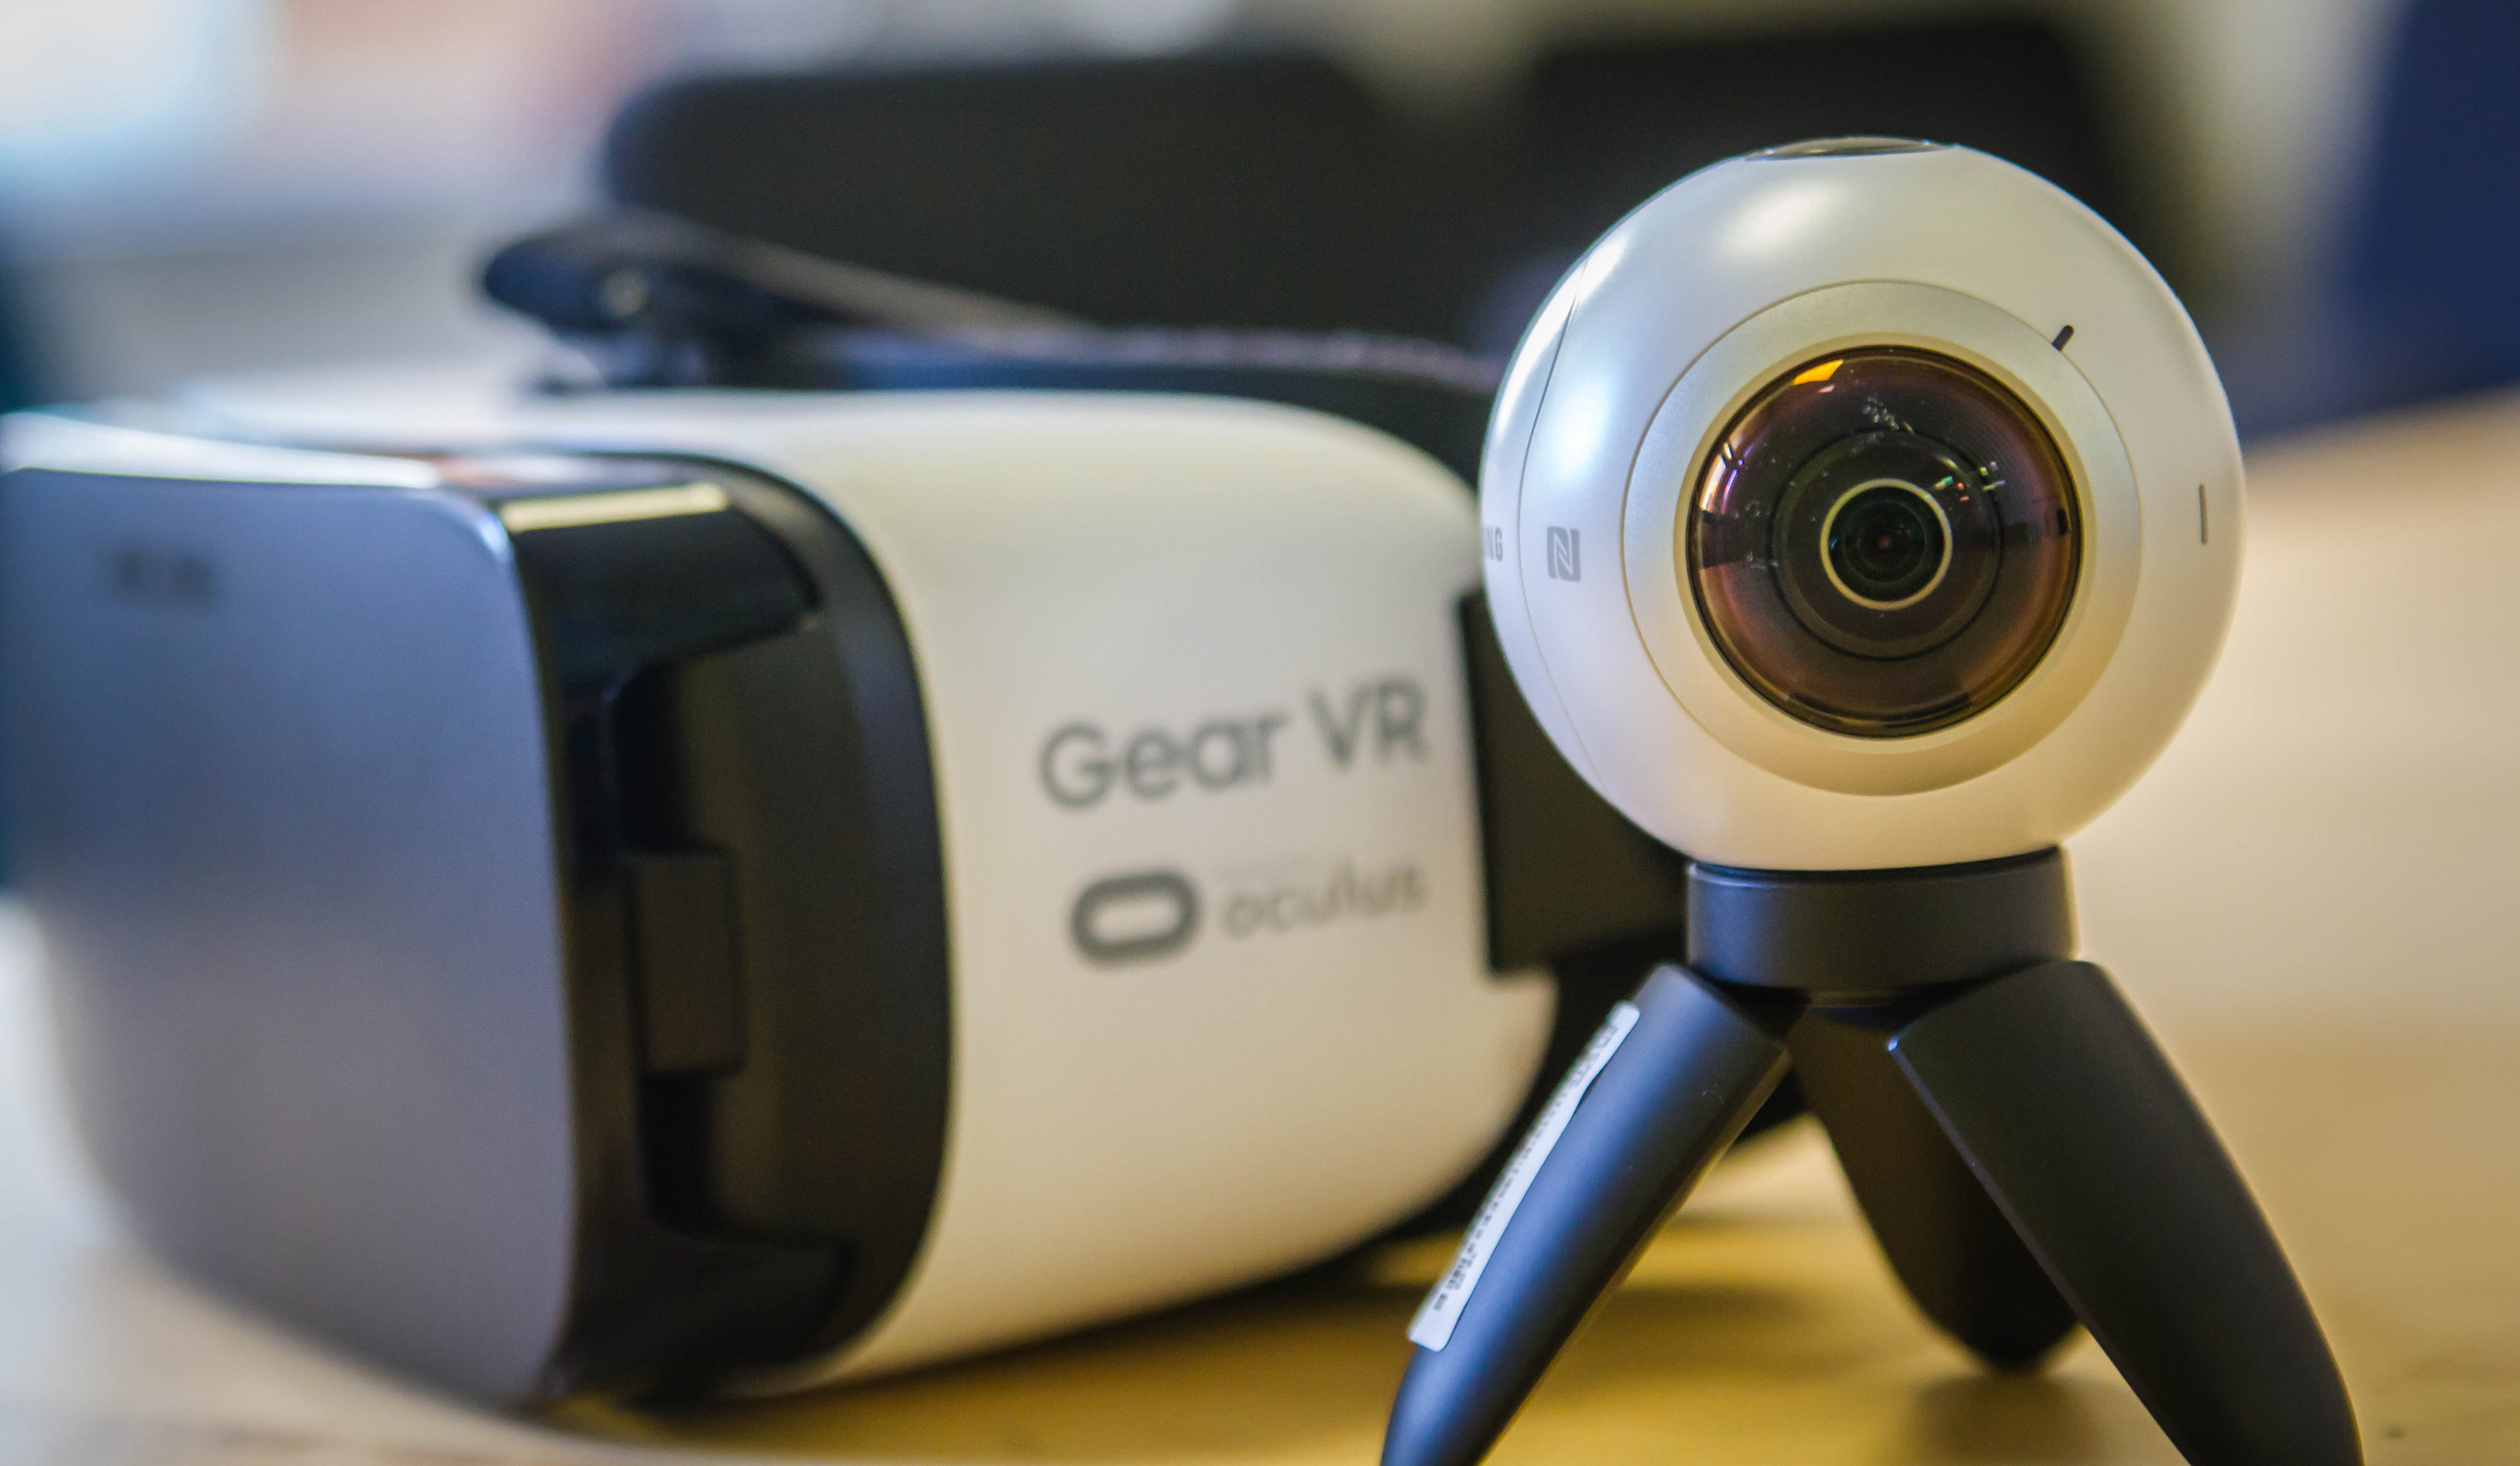 Samsung's Gear 360 and Gear VR headset